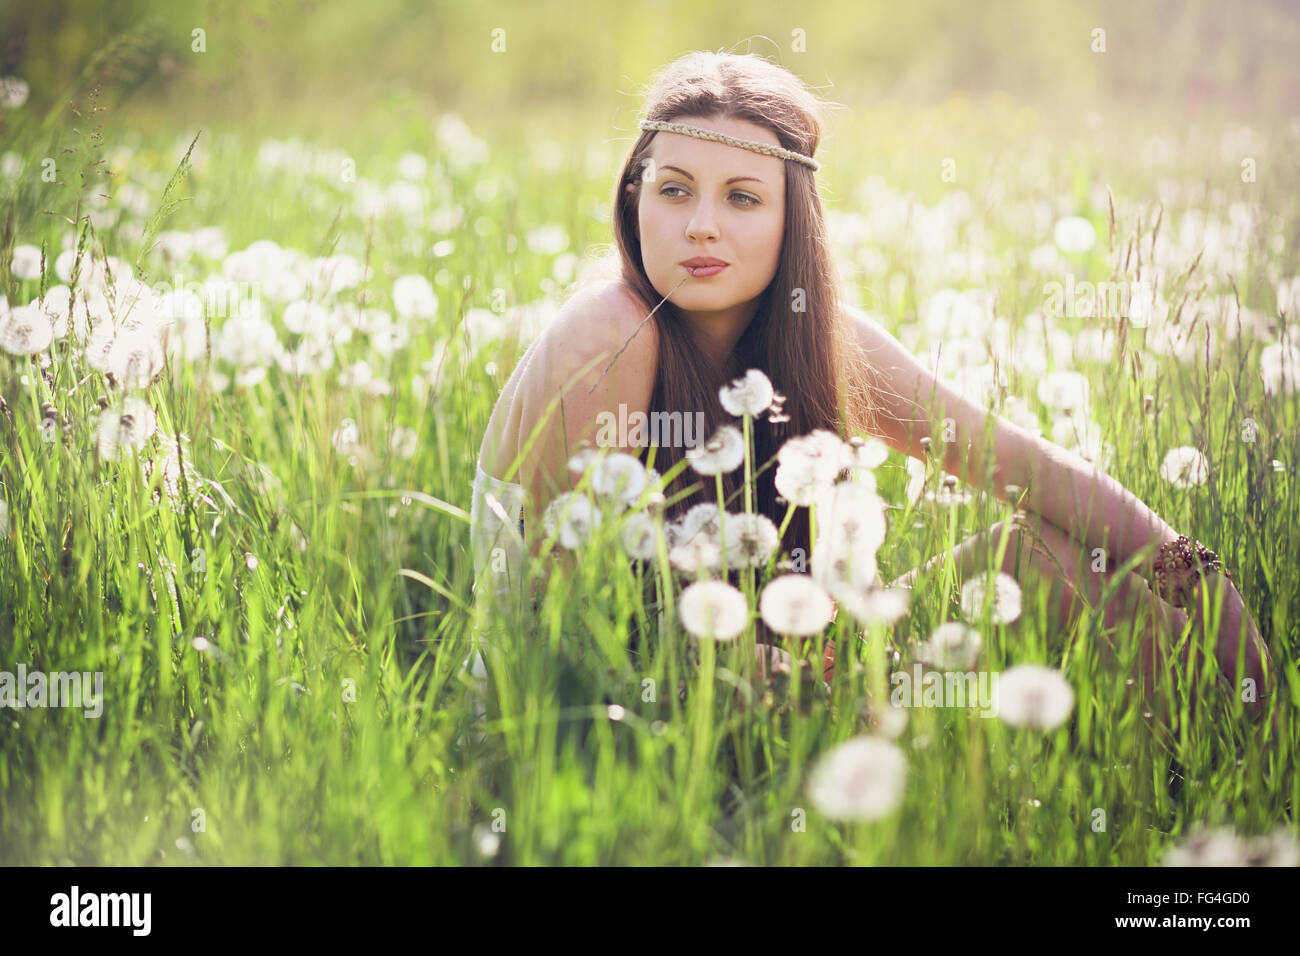 Beautiful woman with carefree expression . Nature harmony - Stock Image